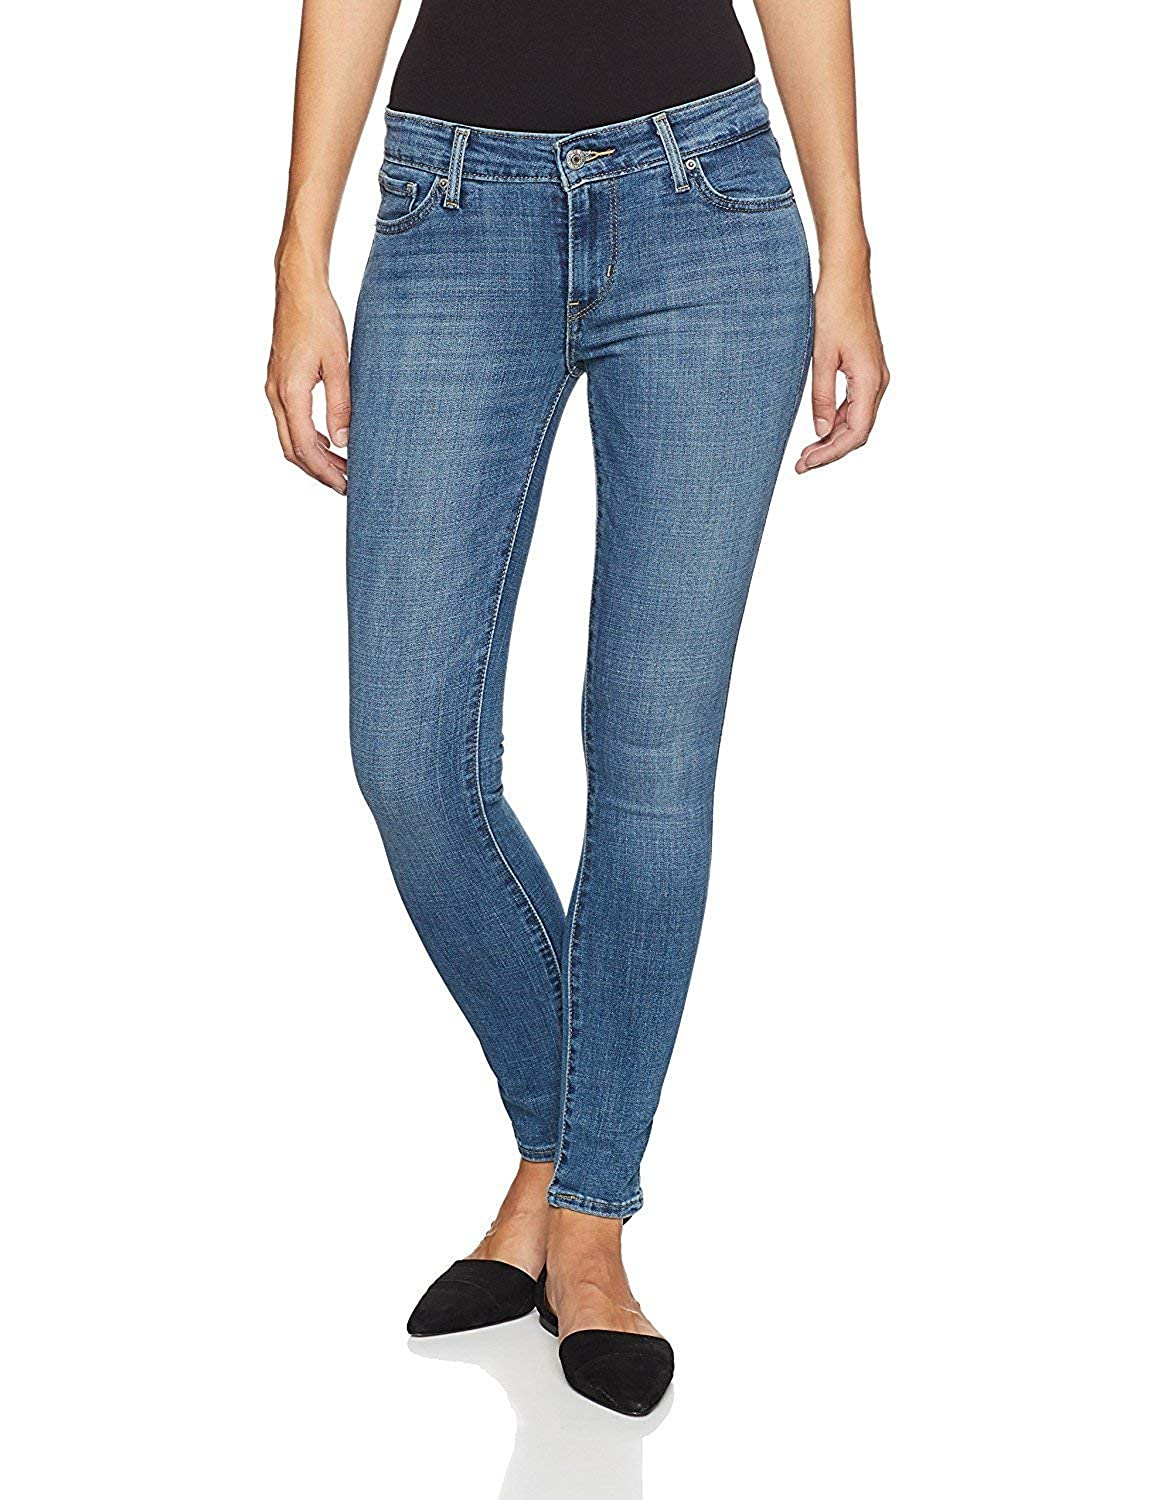 detailed look wholesale sales most desirable fashion Levi's Women's 711 Skinny Jeans